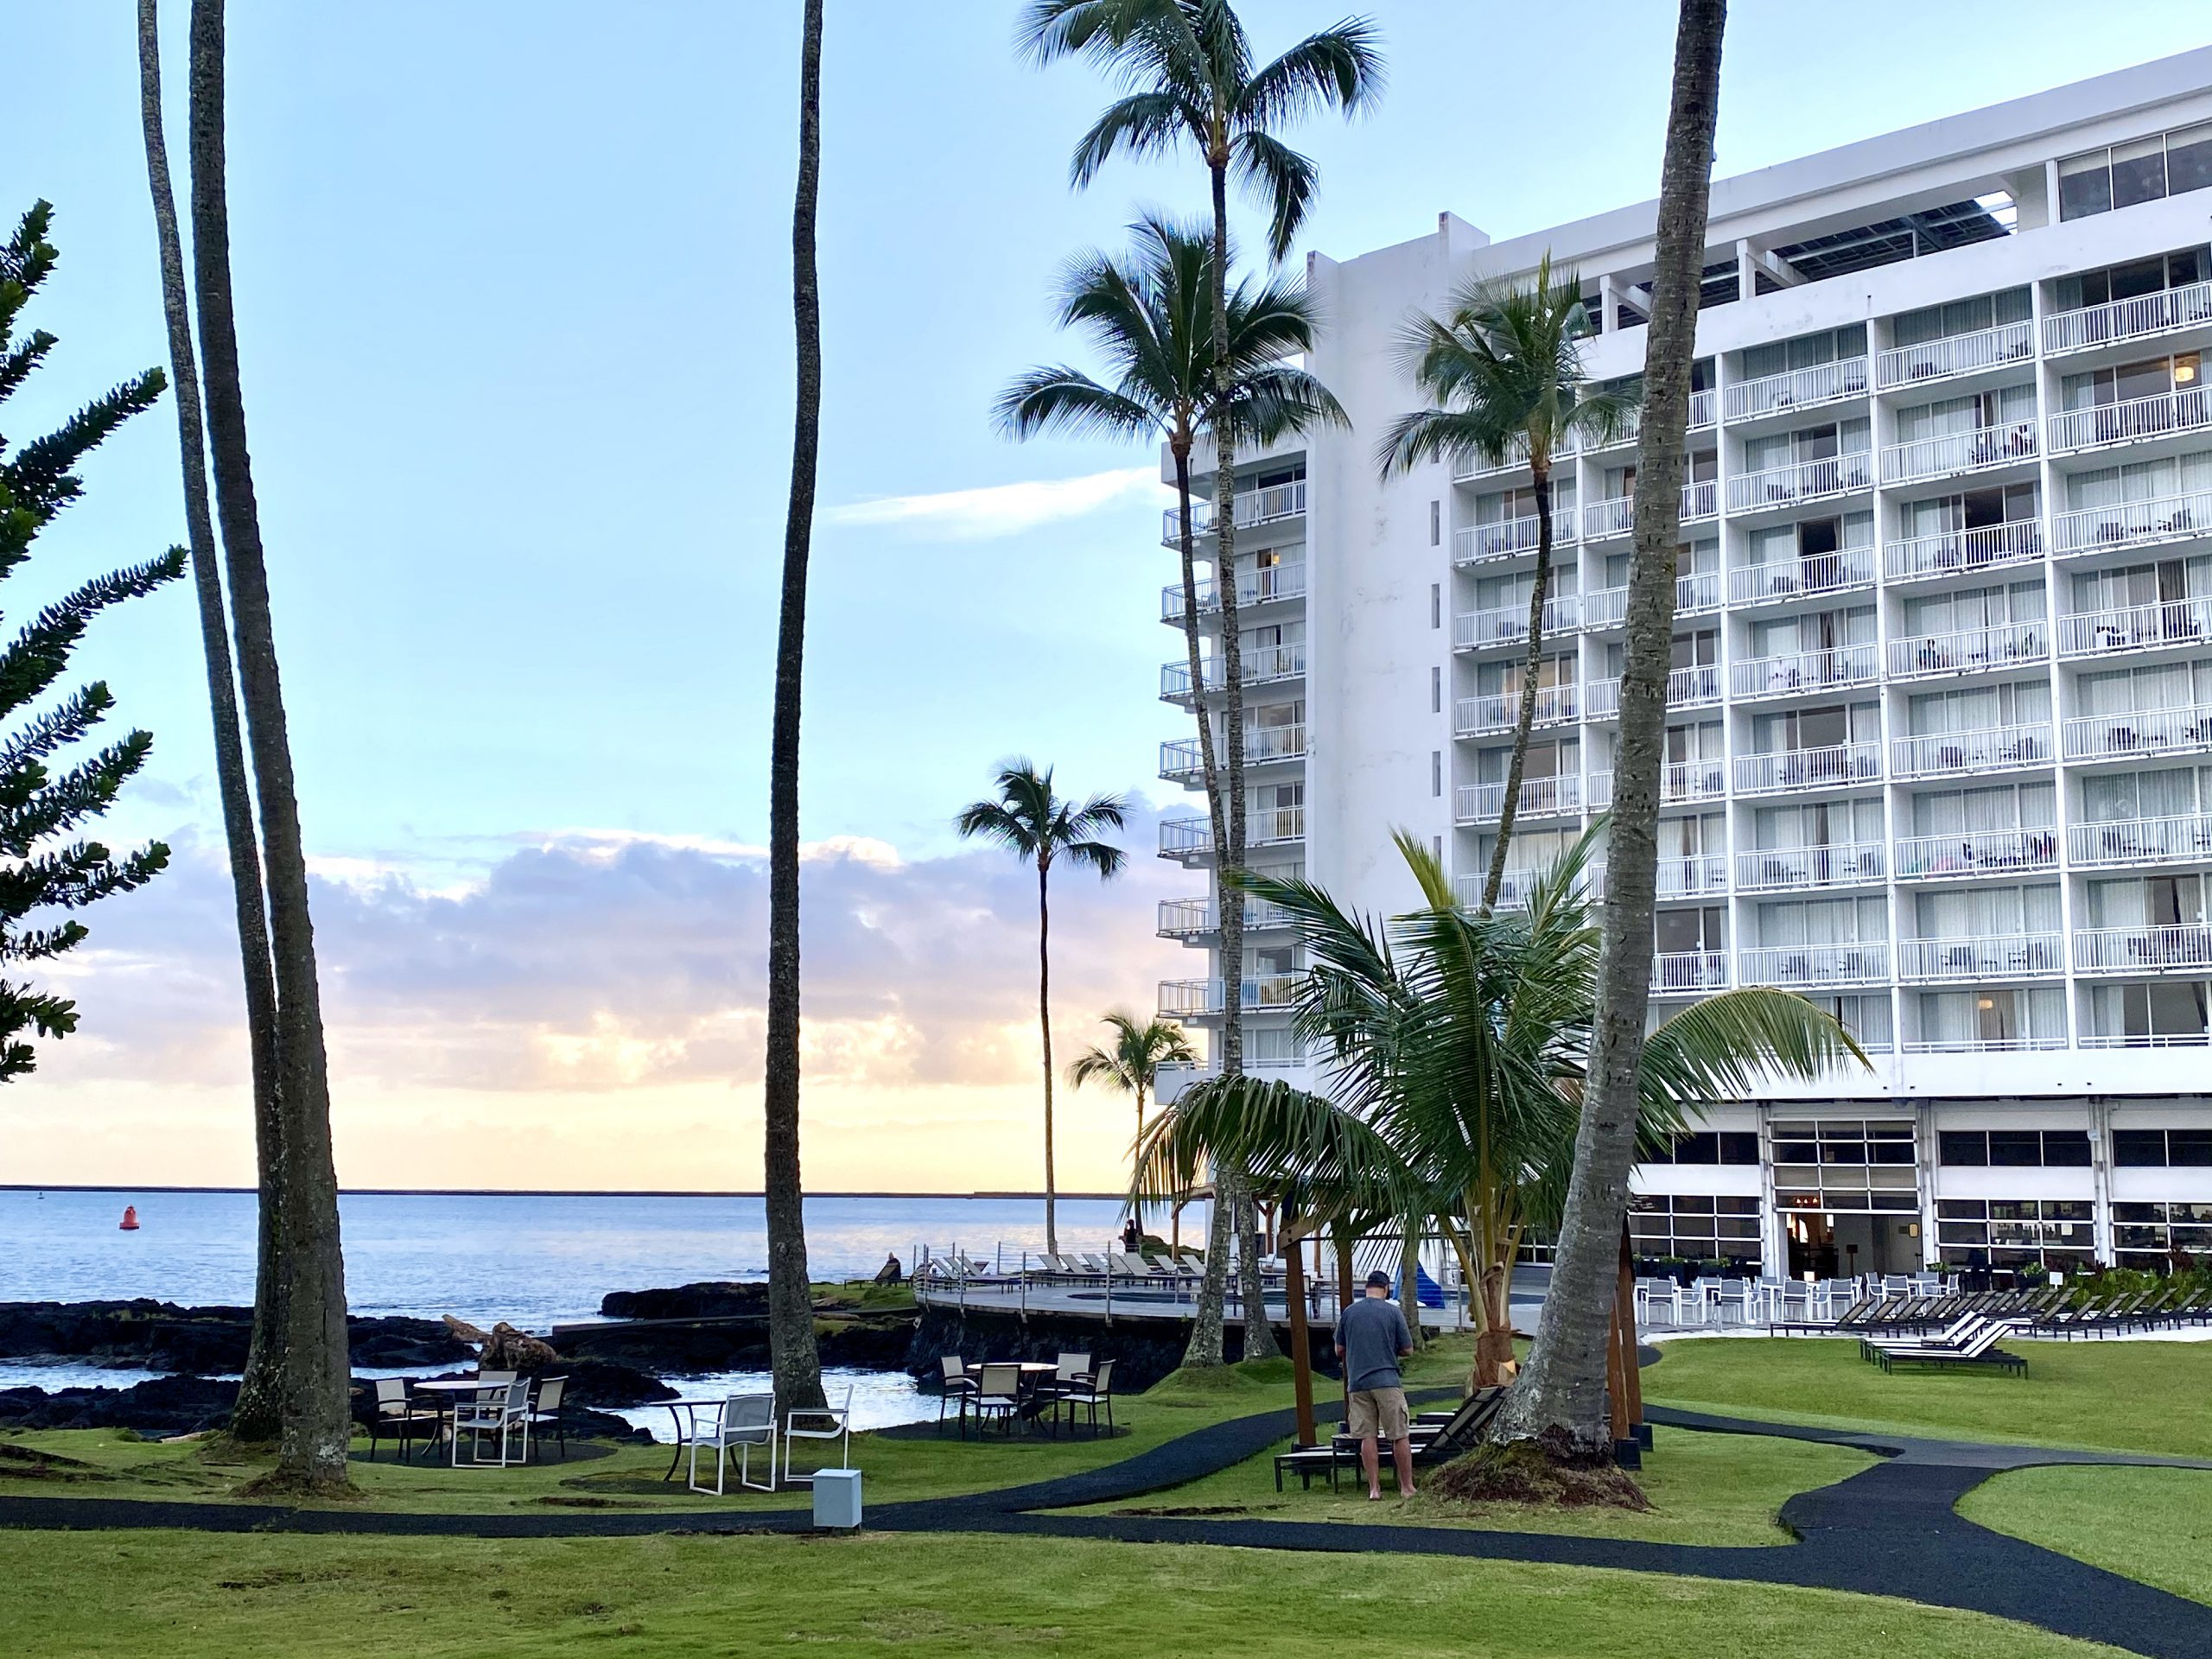 Sunrise at the Grand Naniloa Doubletree Hotel by Doubletree in Hilo, Hawaii